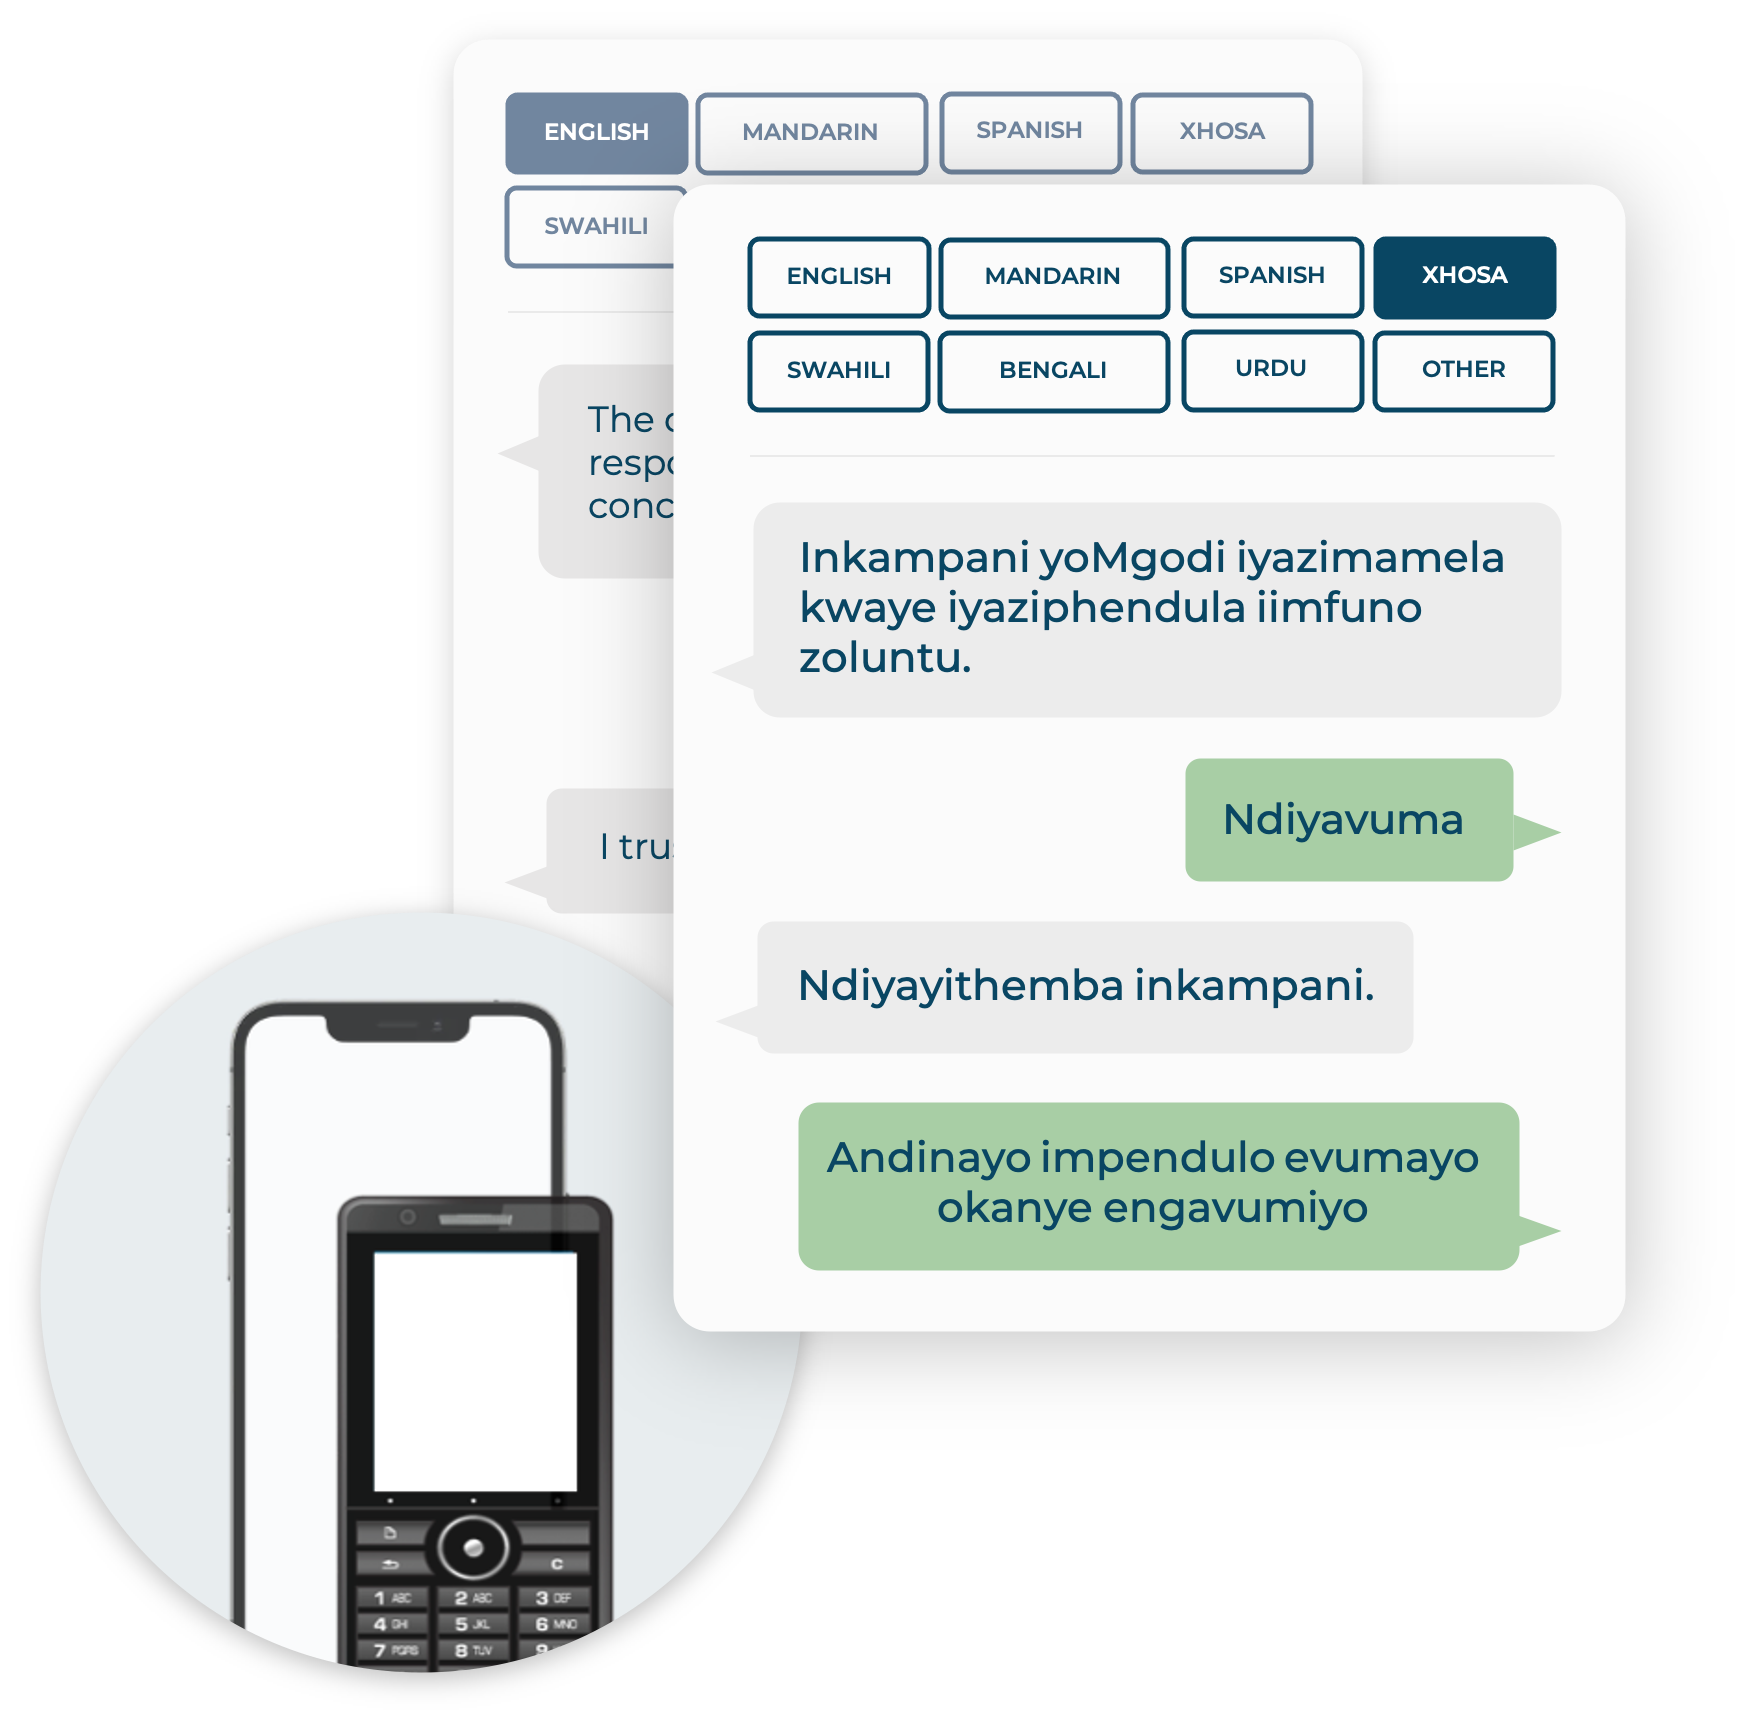 Mobile phones showing an SMS survey exchange in Xhosa (foreground) and English (background)